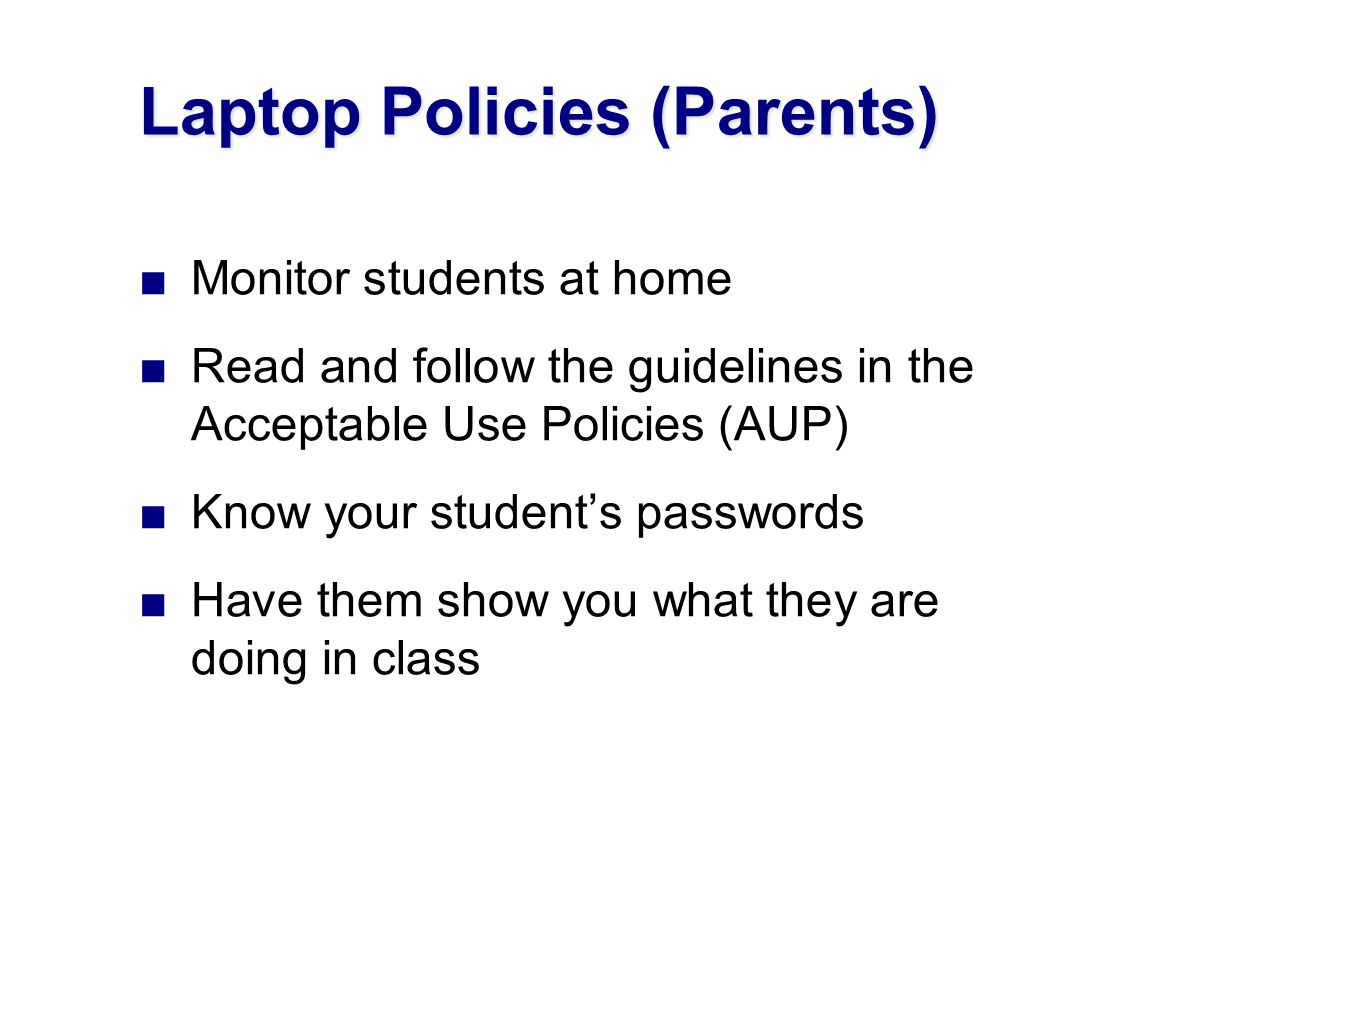 Monitor students at home Read and follow the guidelines in the Acceptable Use Policies (AUP) Know your students passwords Have them show you what they are doing in class Laptop Policies (Parents)